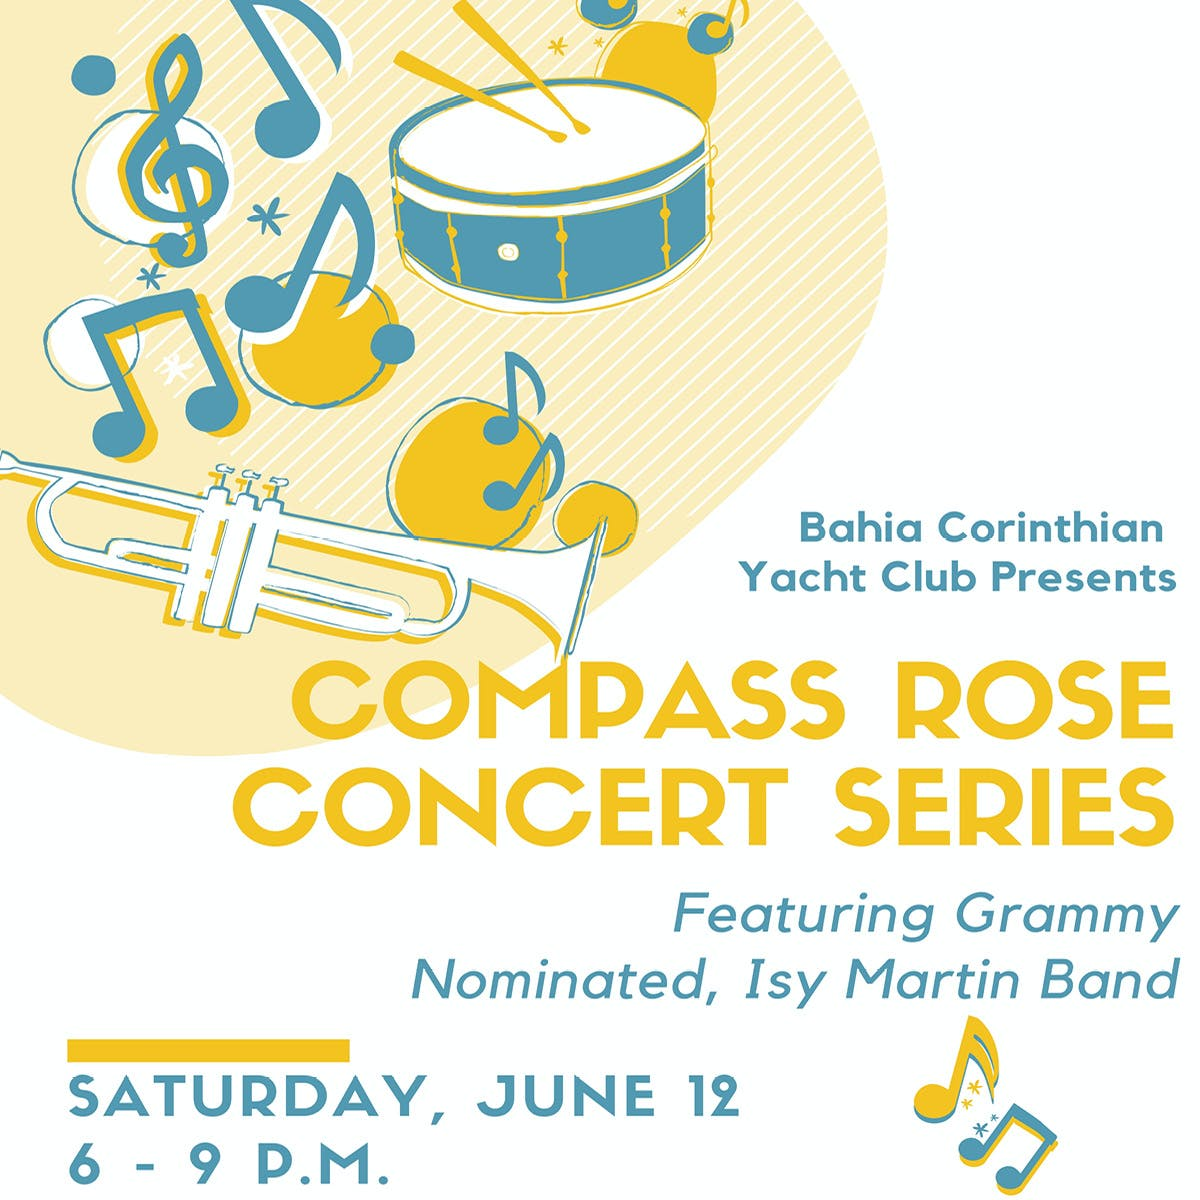 Compass Rose Concert Series June 12